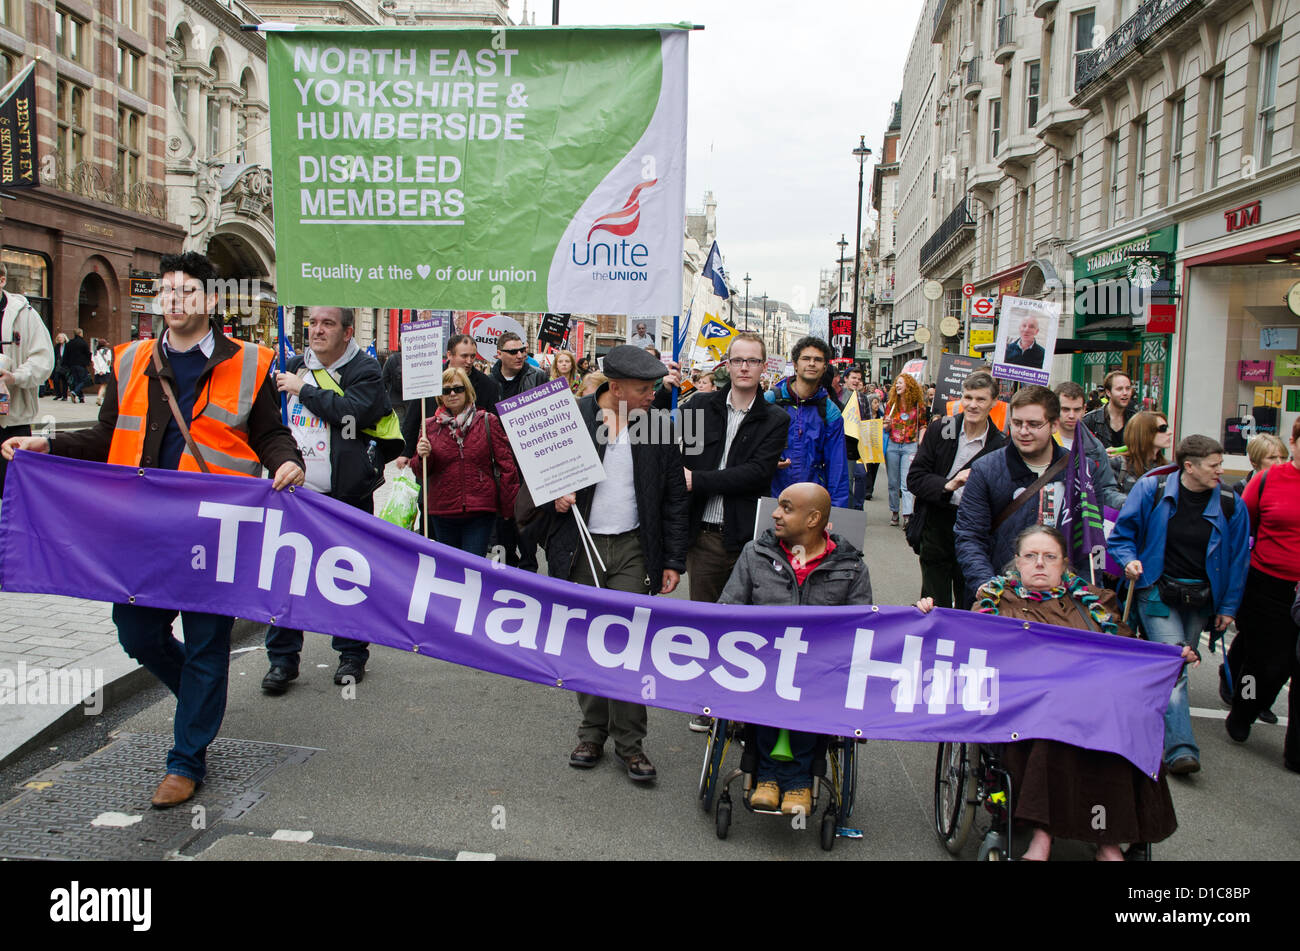 DEMO AGAINST AUSTERITY CUTS BY THE BRITISH GOVERNMENT IN 2012 - Stock Image